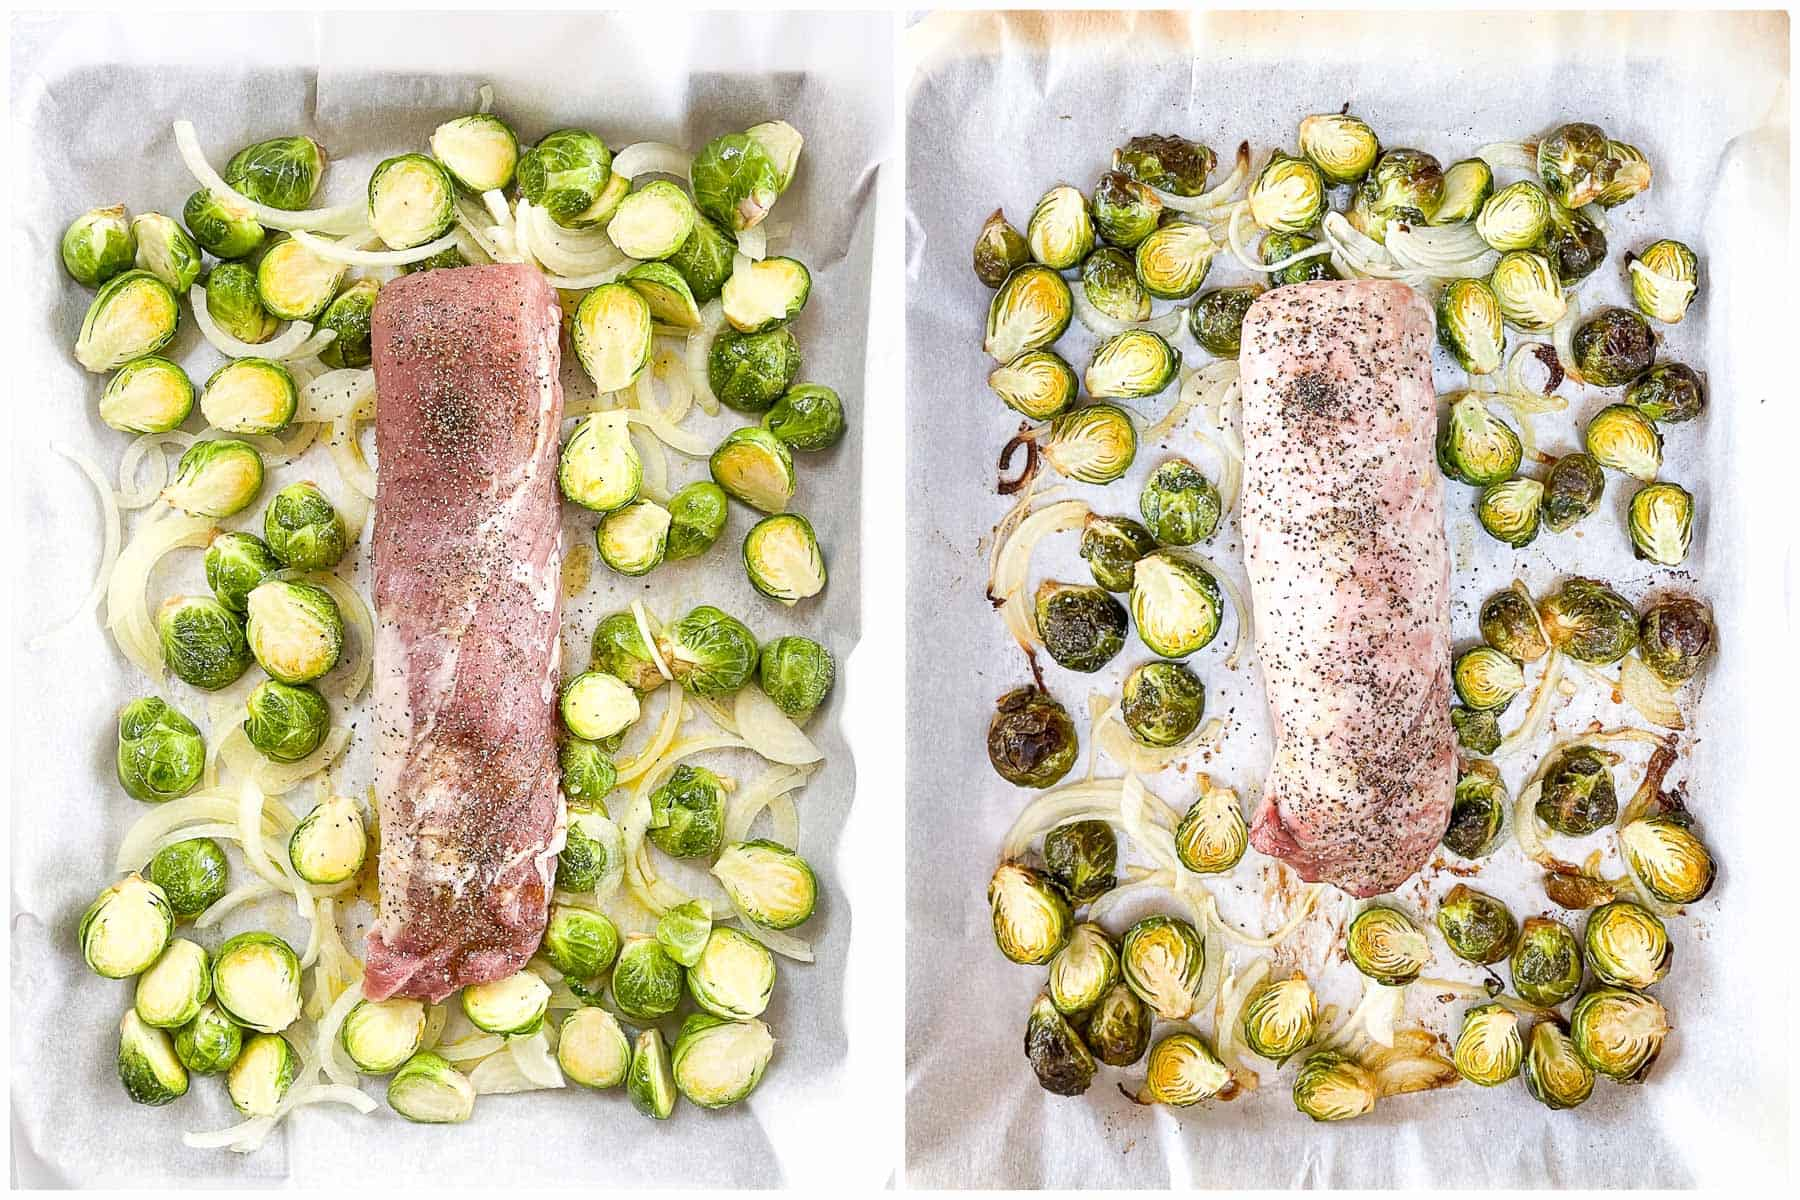 keto sheet pan pork tenderloin with romesco on a baking sheet with Brussel sprouts with a white background